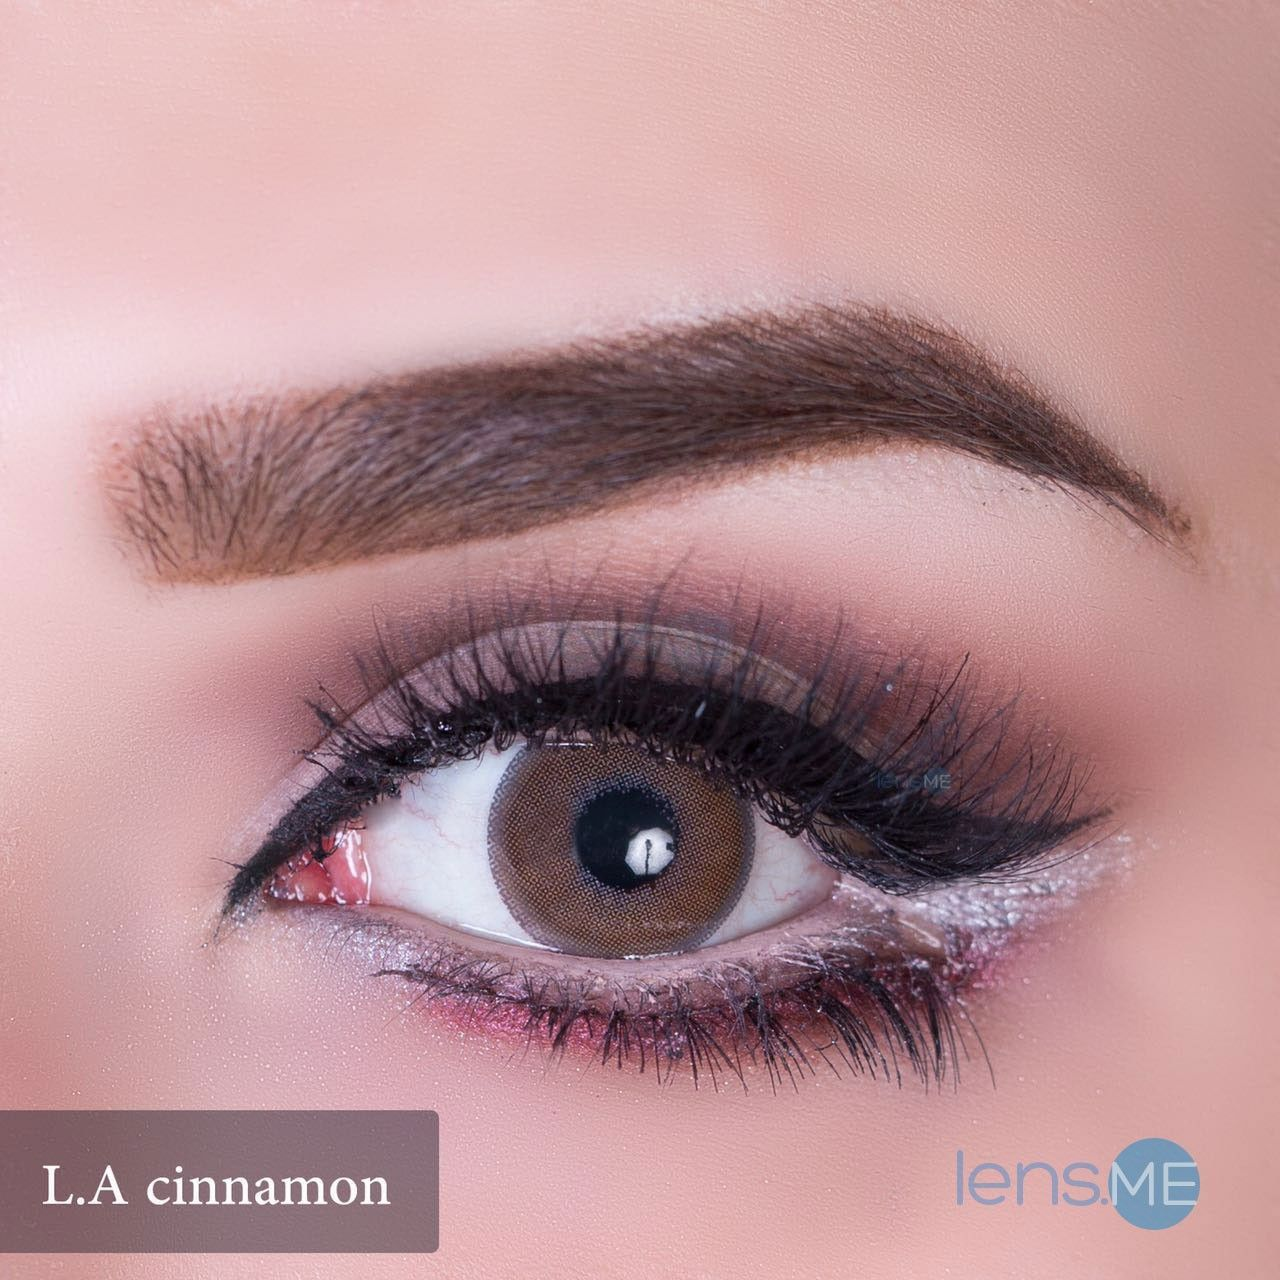 anesthesia la cinnamon 2 contact lenses usa uae uk europe